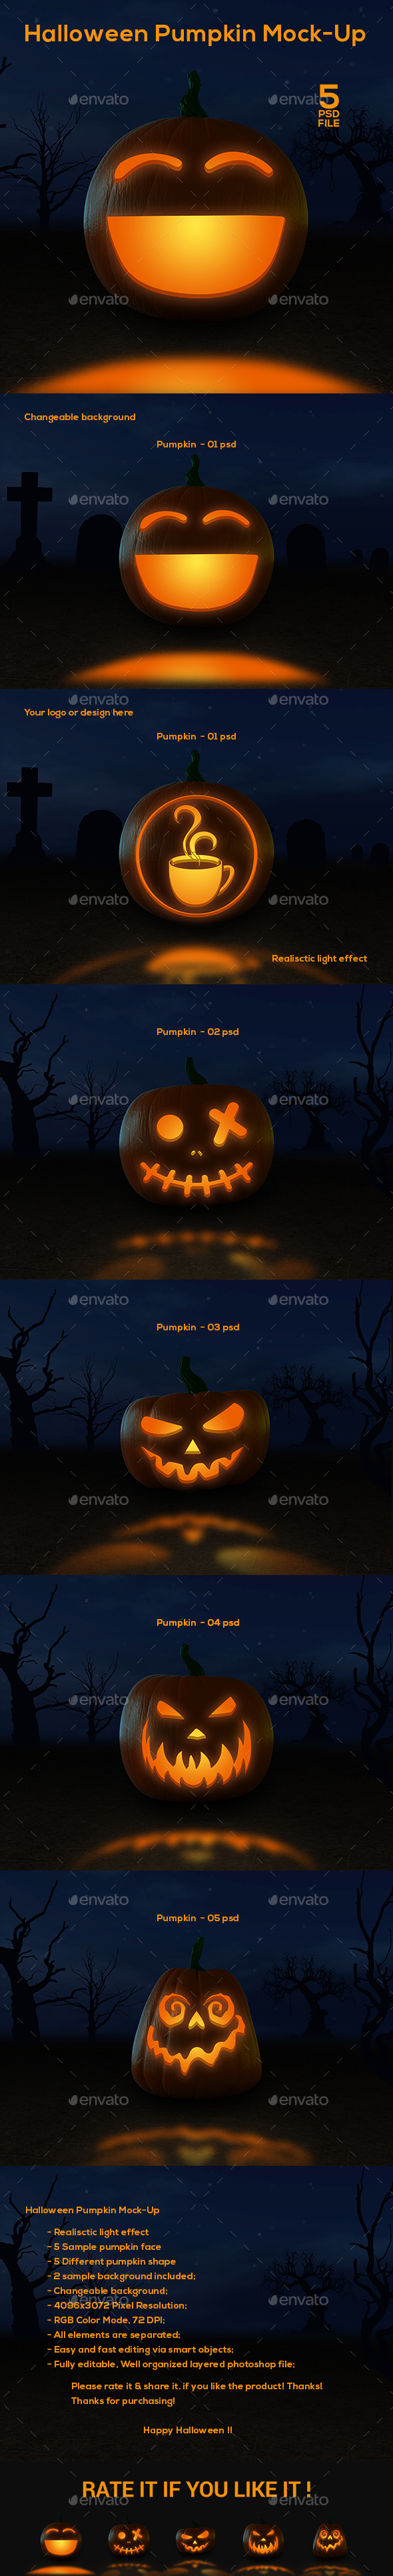 Halloween Pumpkin Mock-Up - Miscellaneous Product Mock-Ups